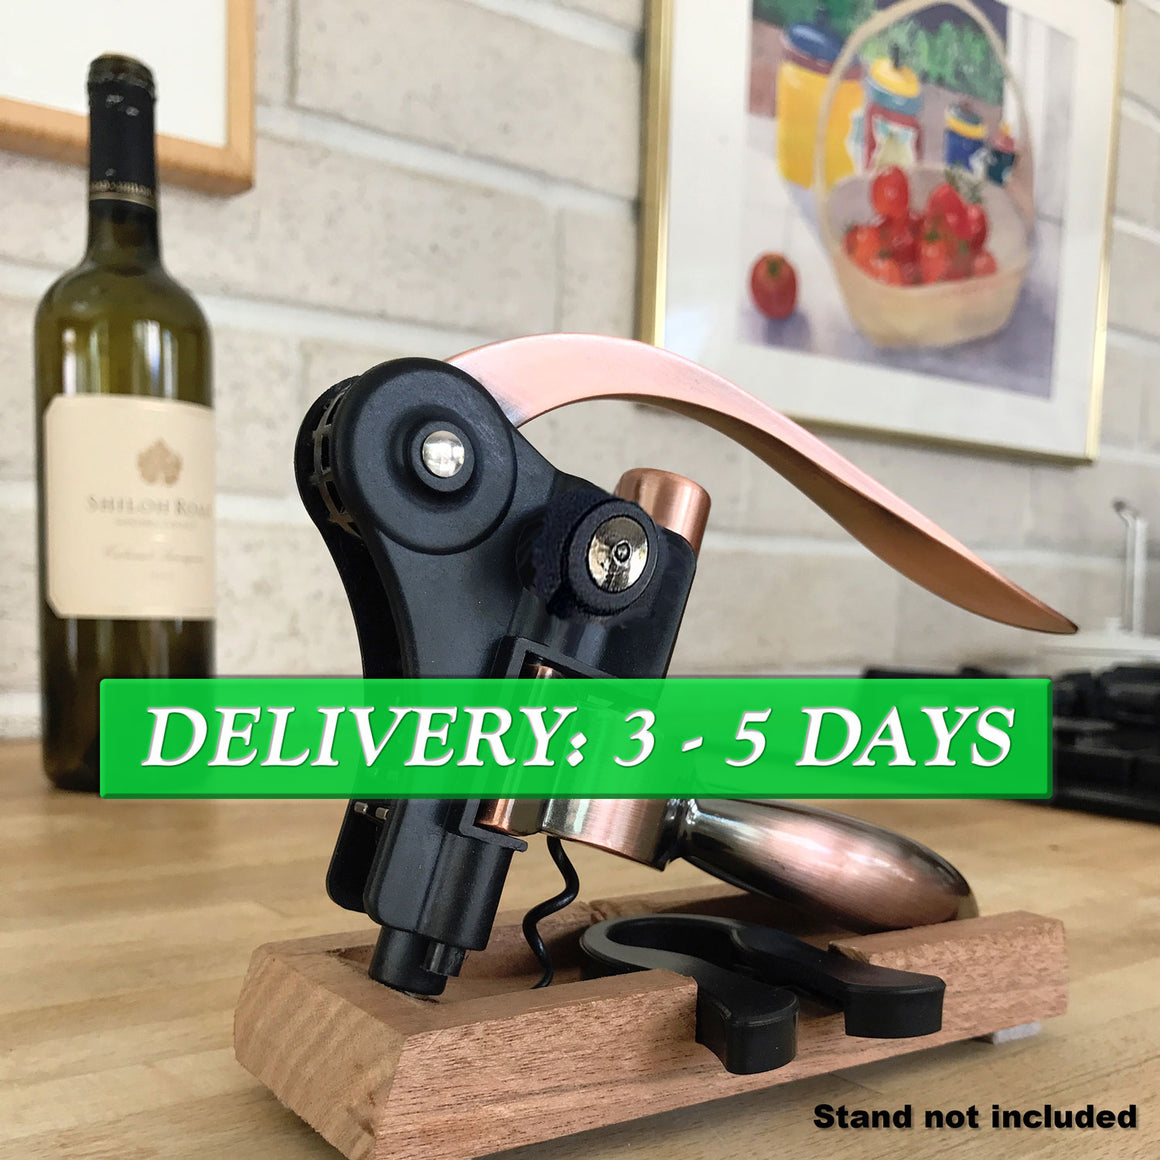 Trader Dave's Rabbit Wine Opener – Opens as easy as 1 - 2 - 3 - 4!